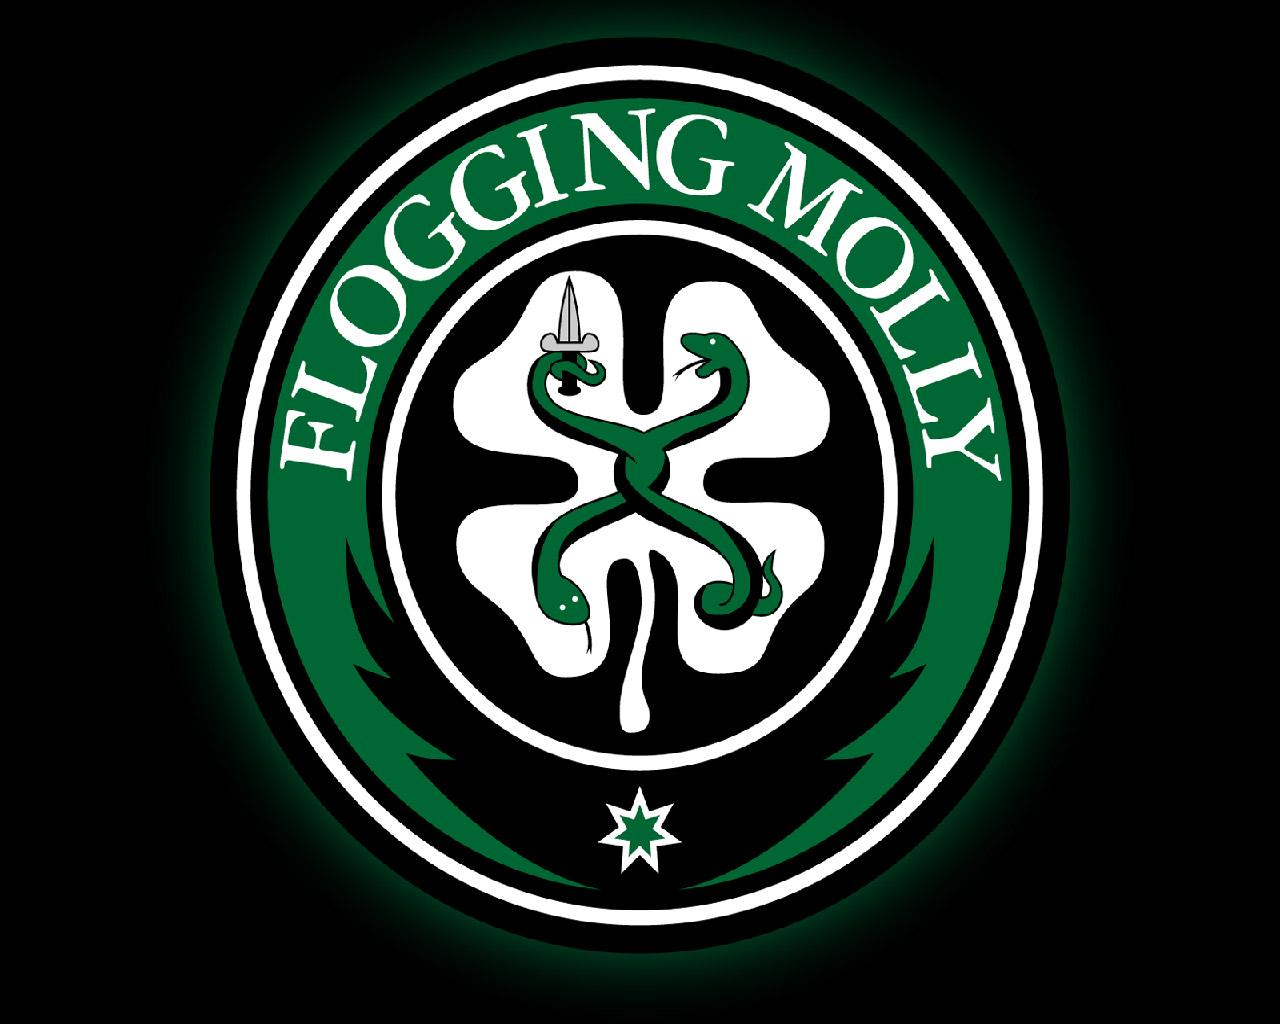 Обои Flogging Molly 1280x1024